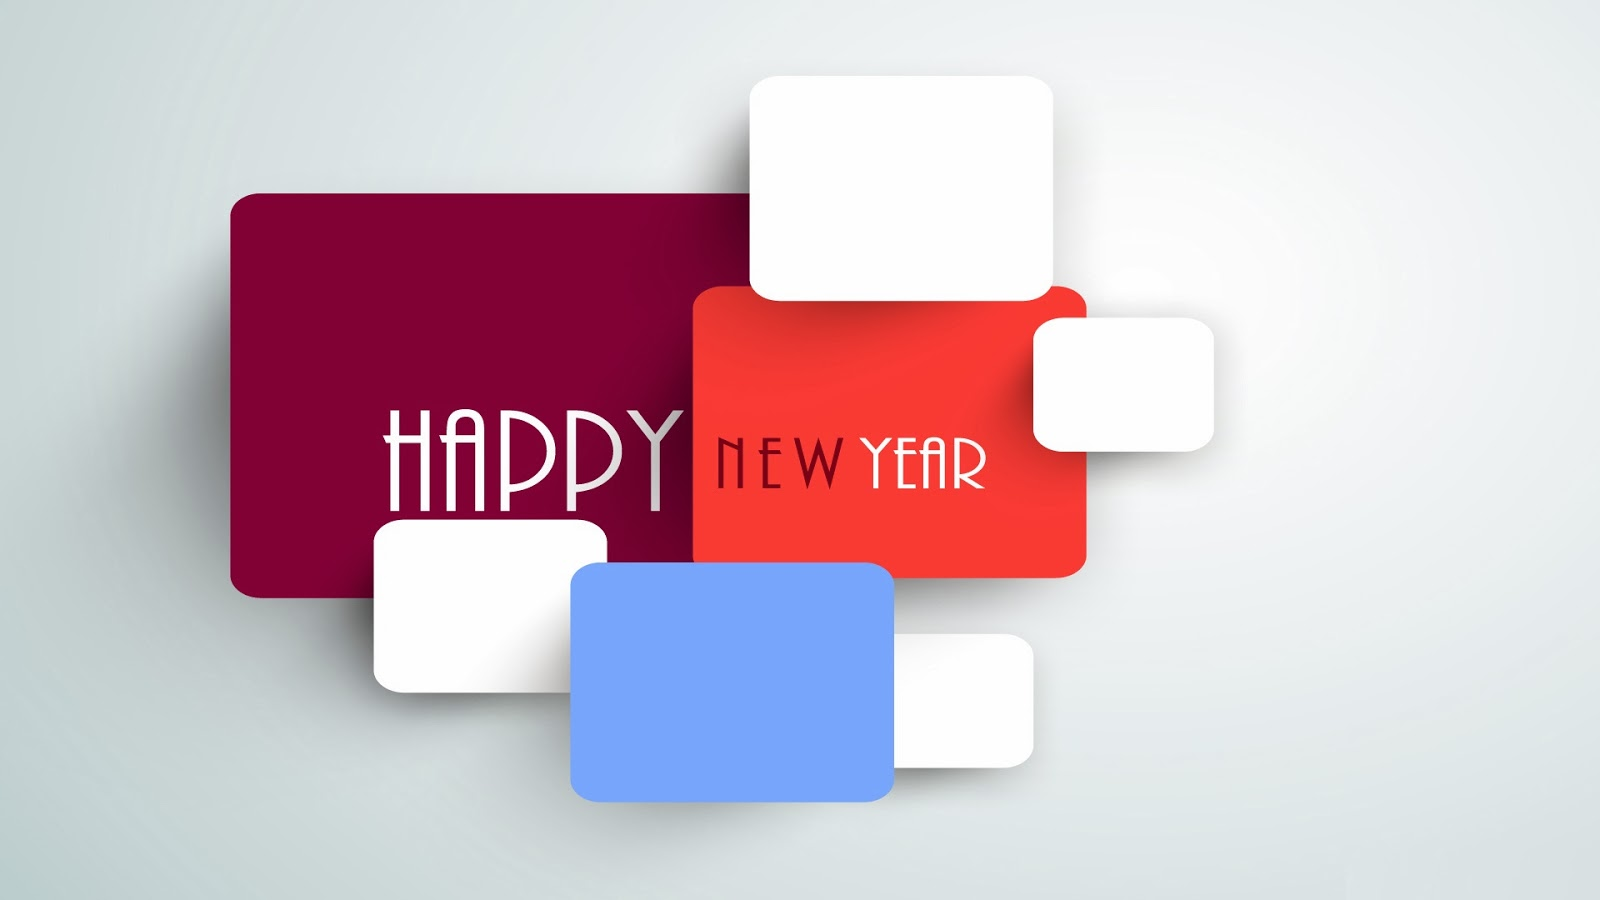 free download 2014 new year hd wallpapersjpg